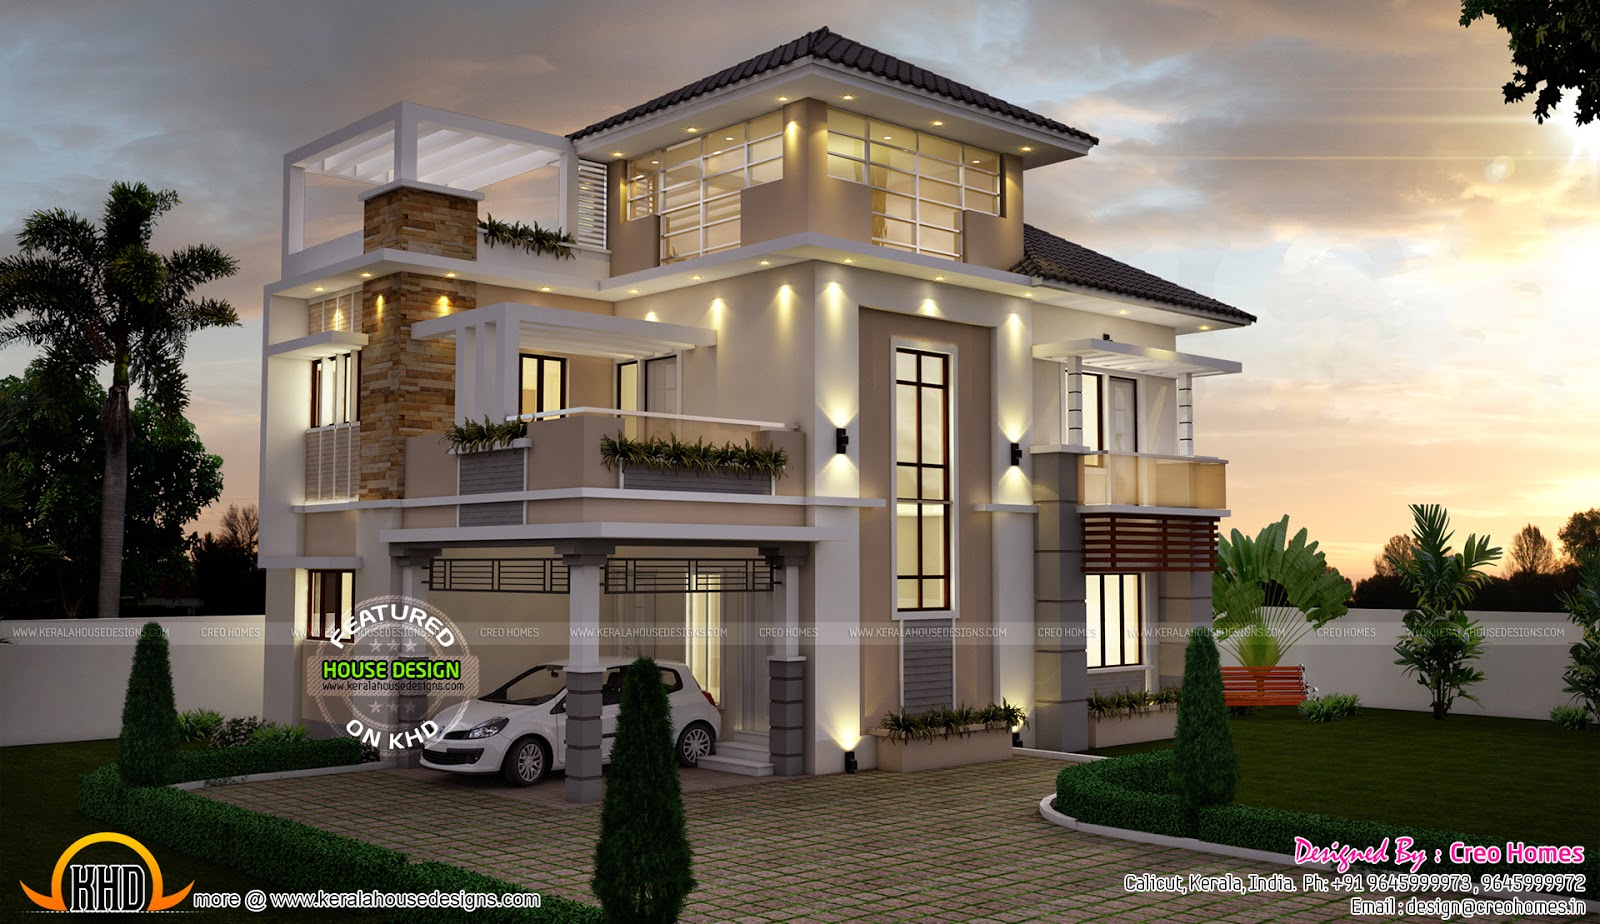 Super stylish contemporary house kerala home design and for Modern house design bloxburg